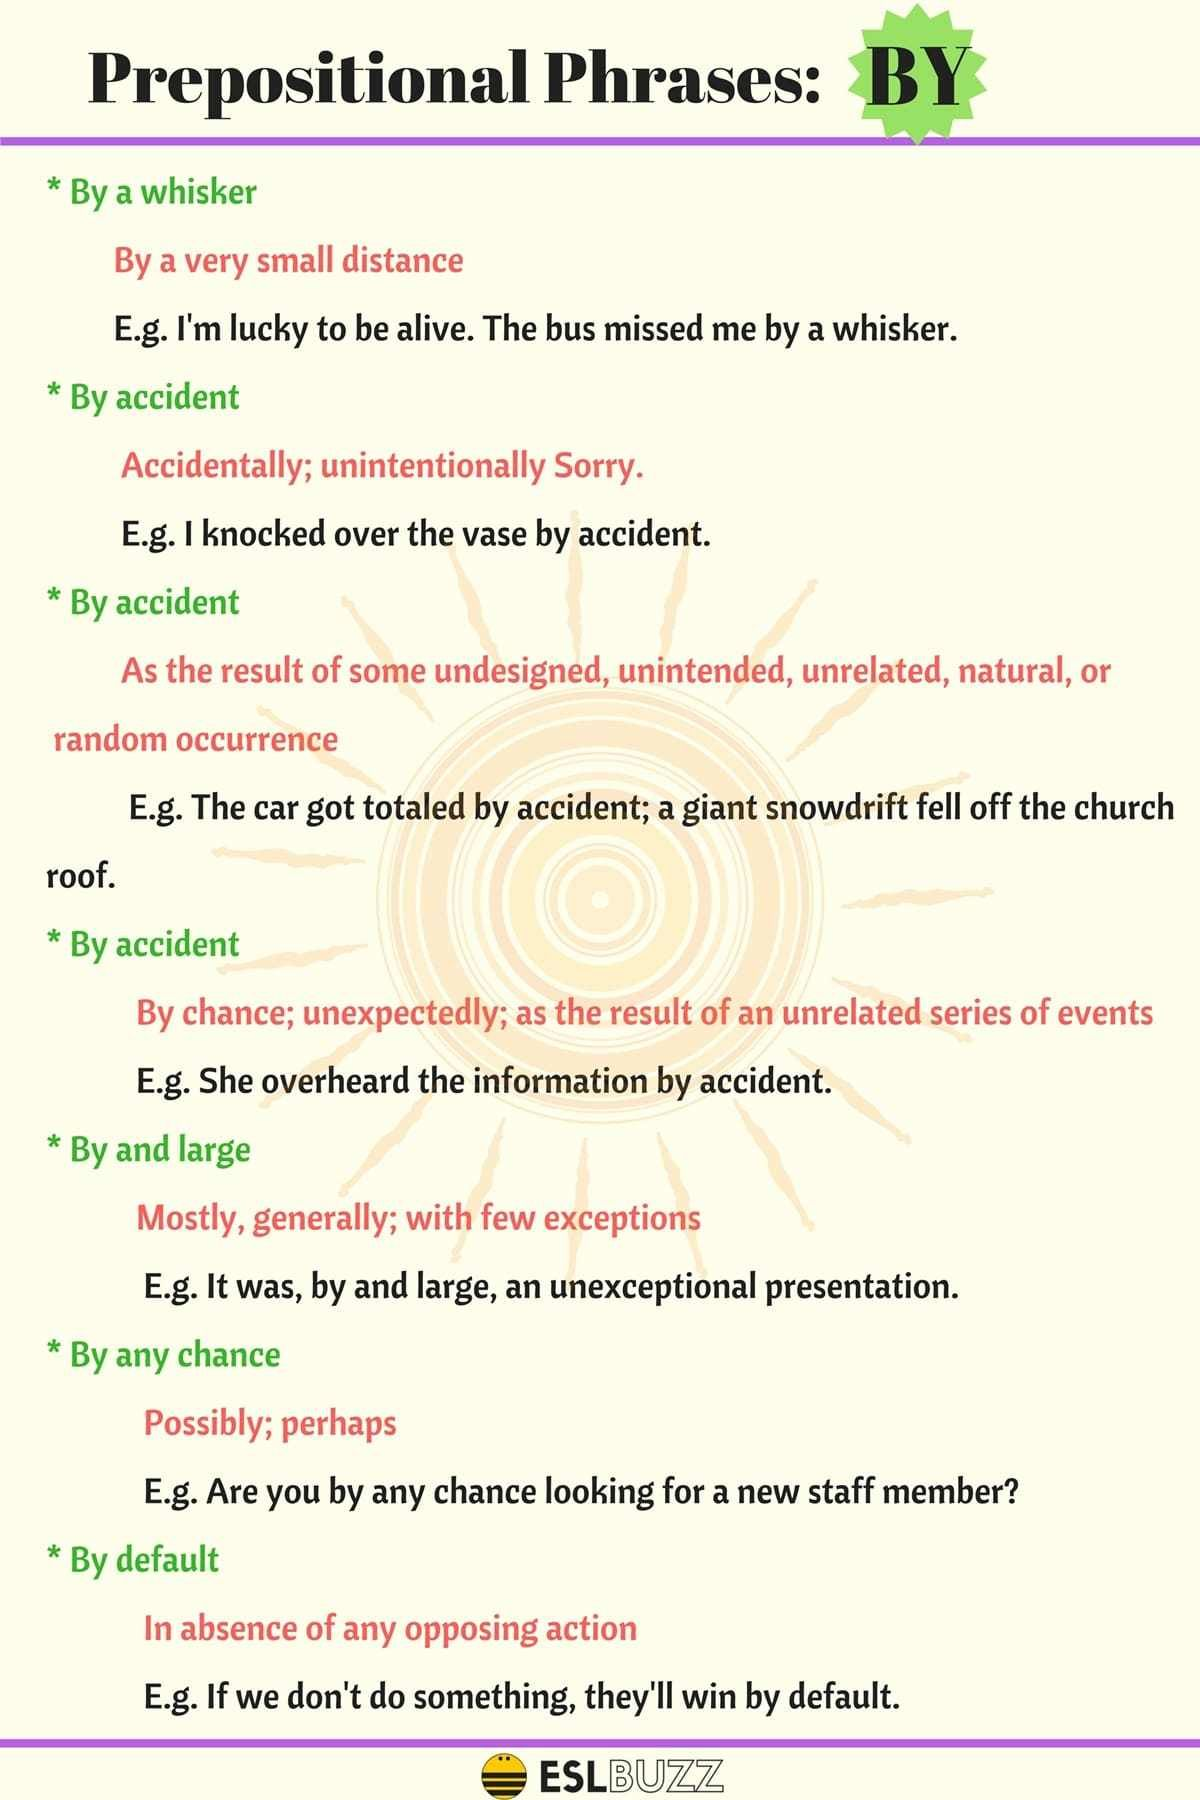 20 Popular Prepositional Phrases With By With Meaning And